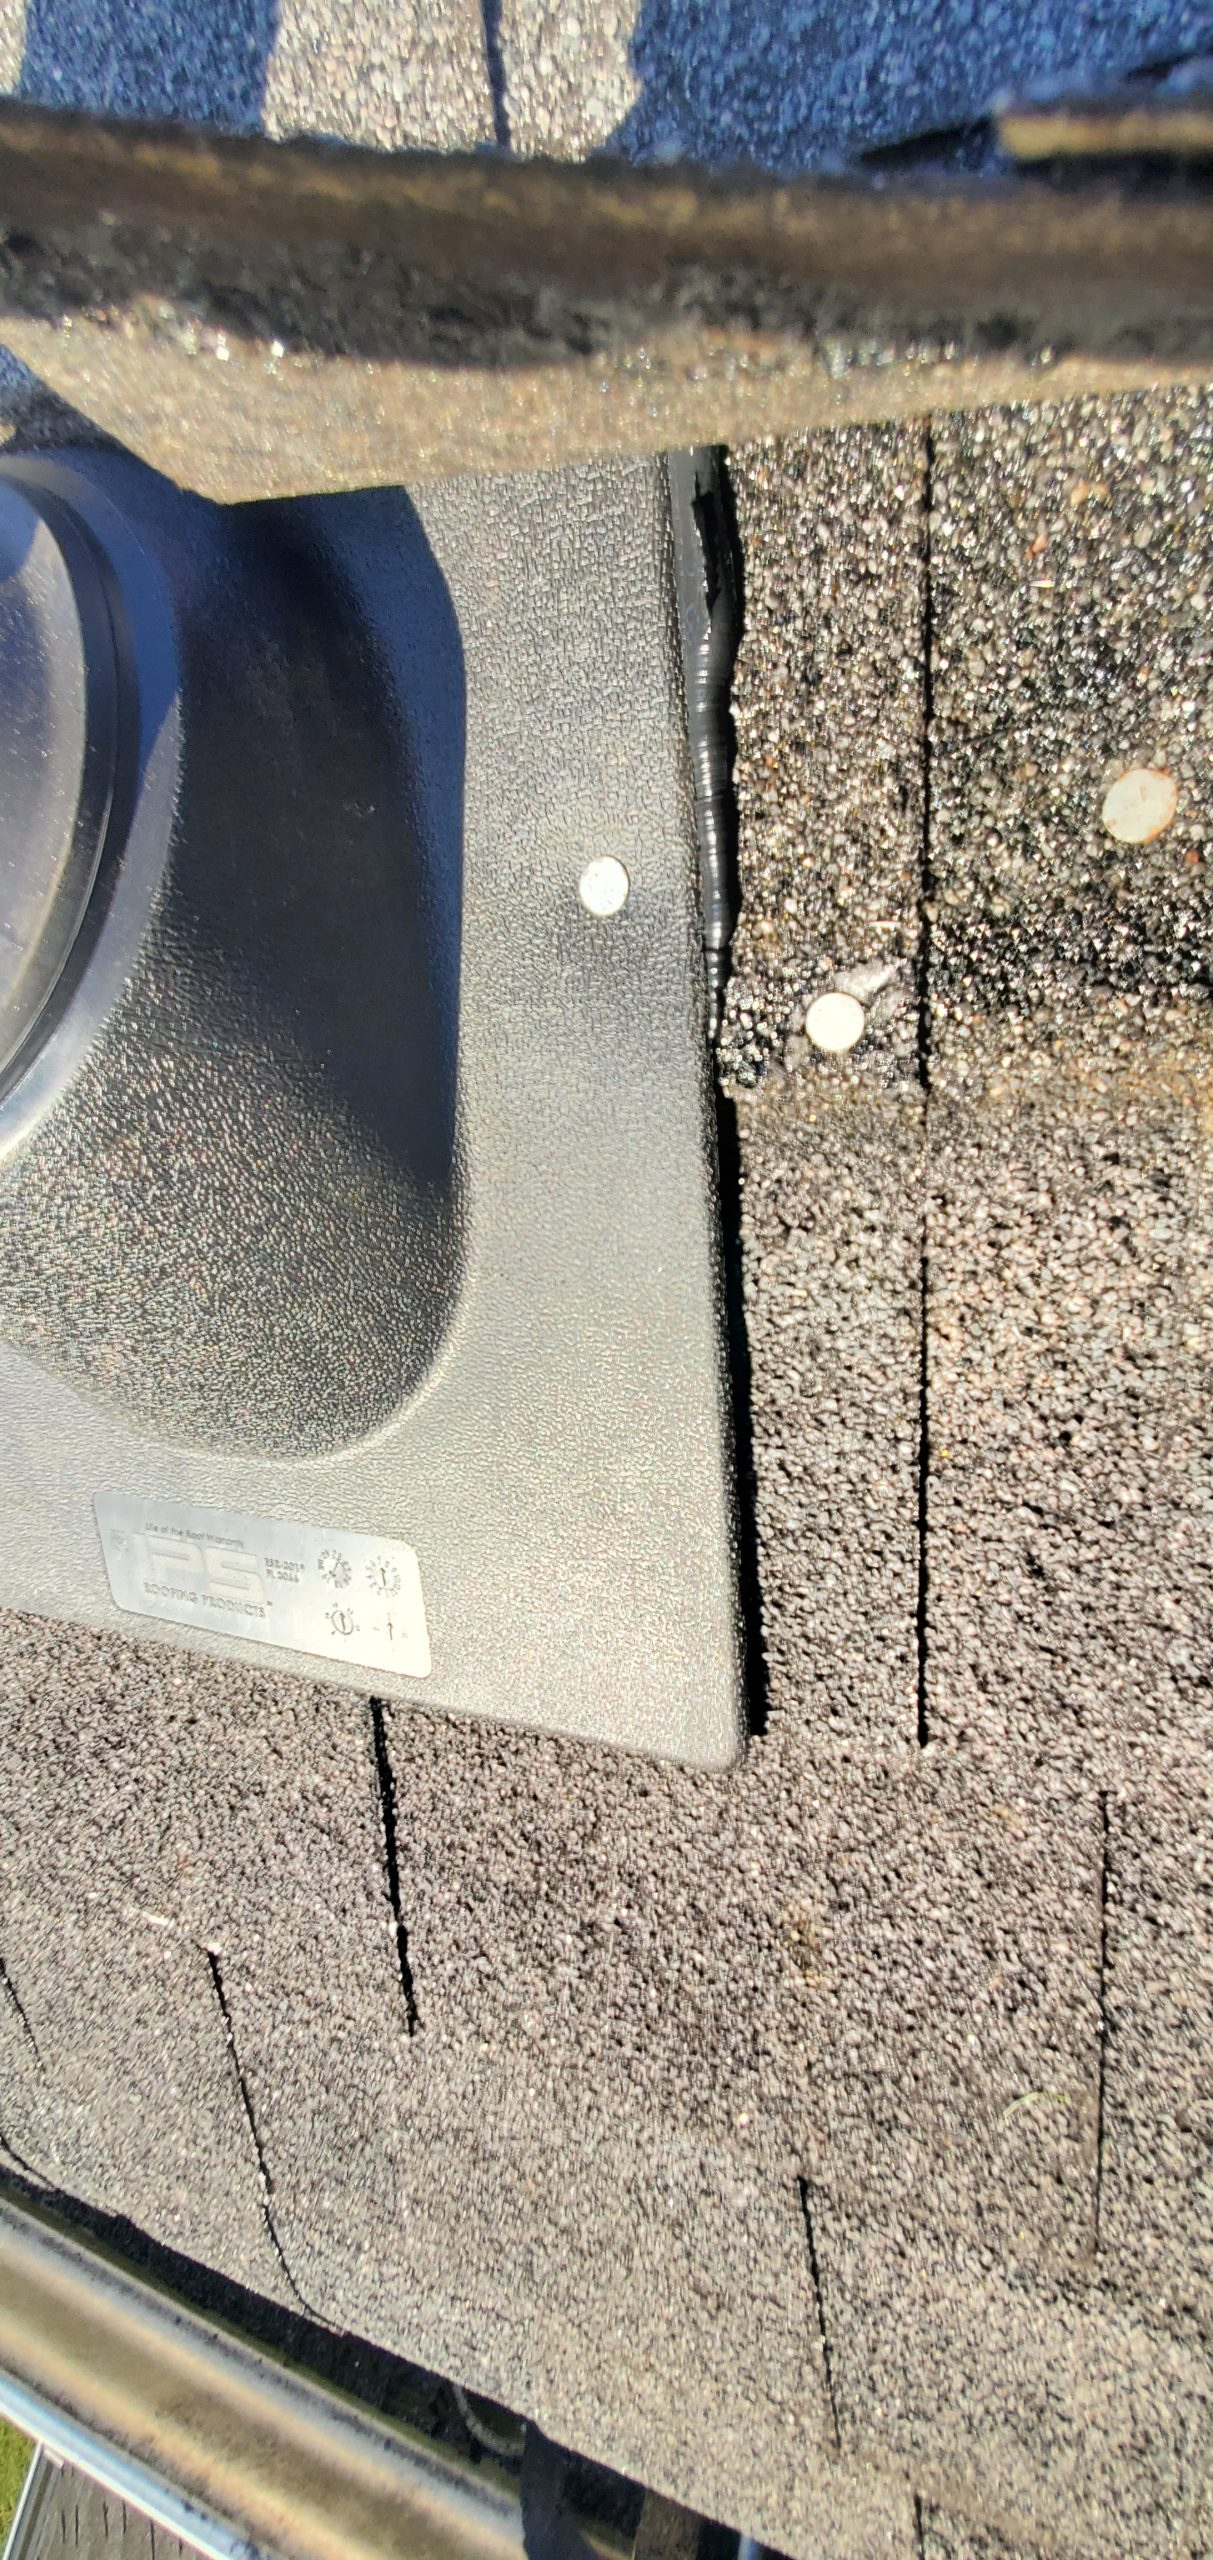 This is a close view of a newly installed pipe boot.